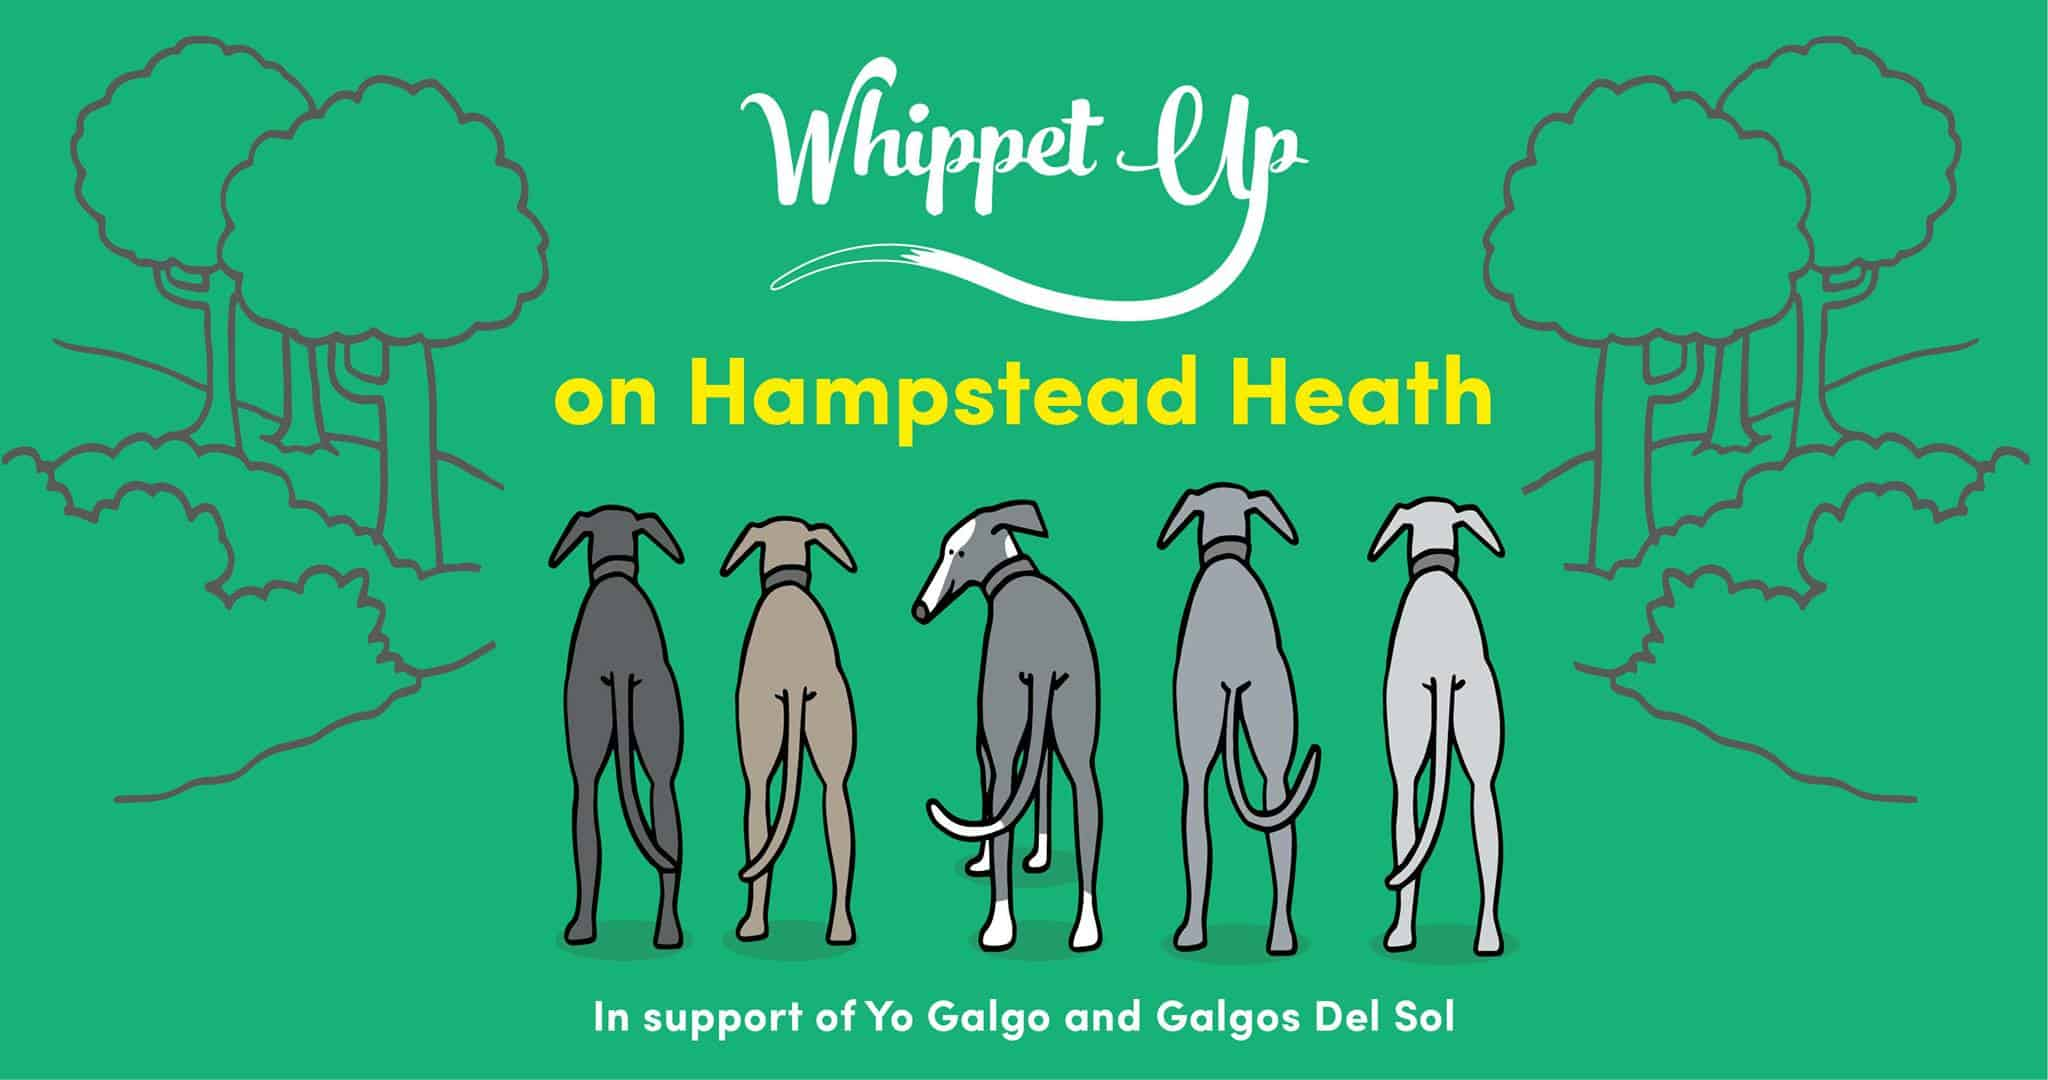 London Dog Events - Whippet Up April